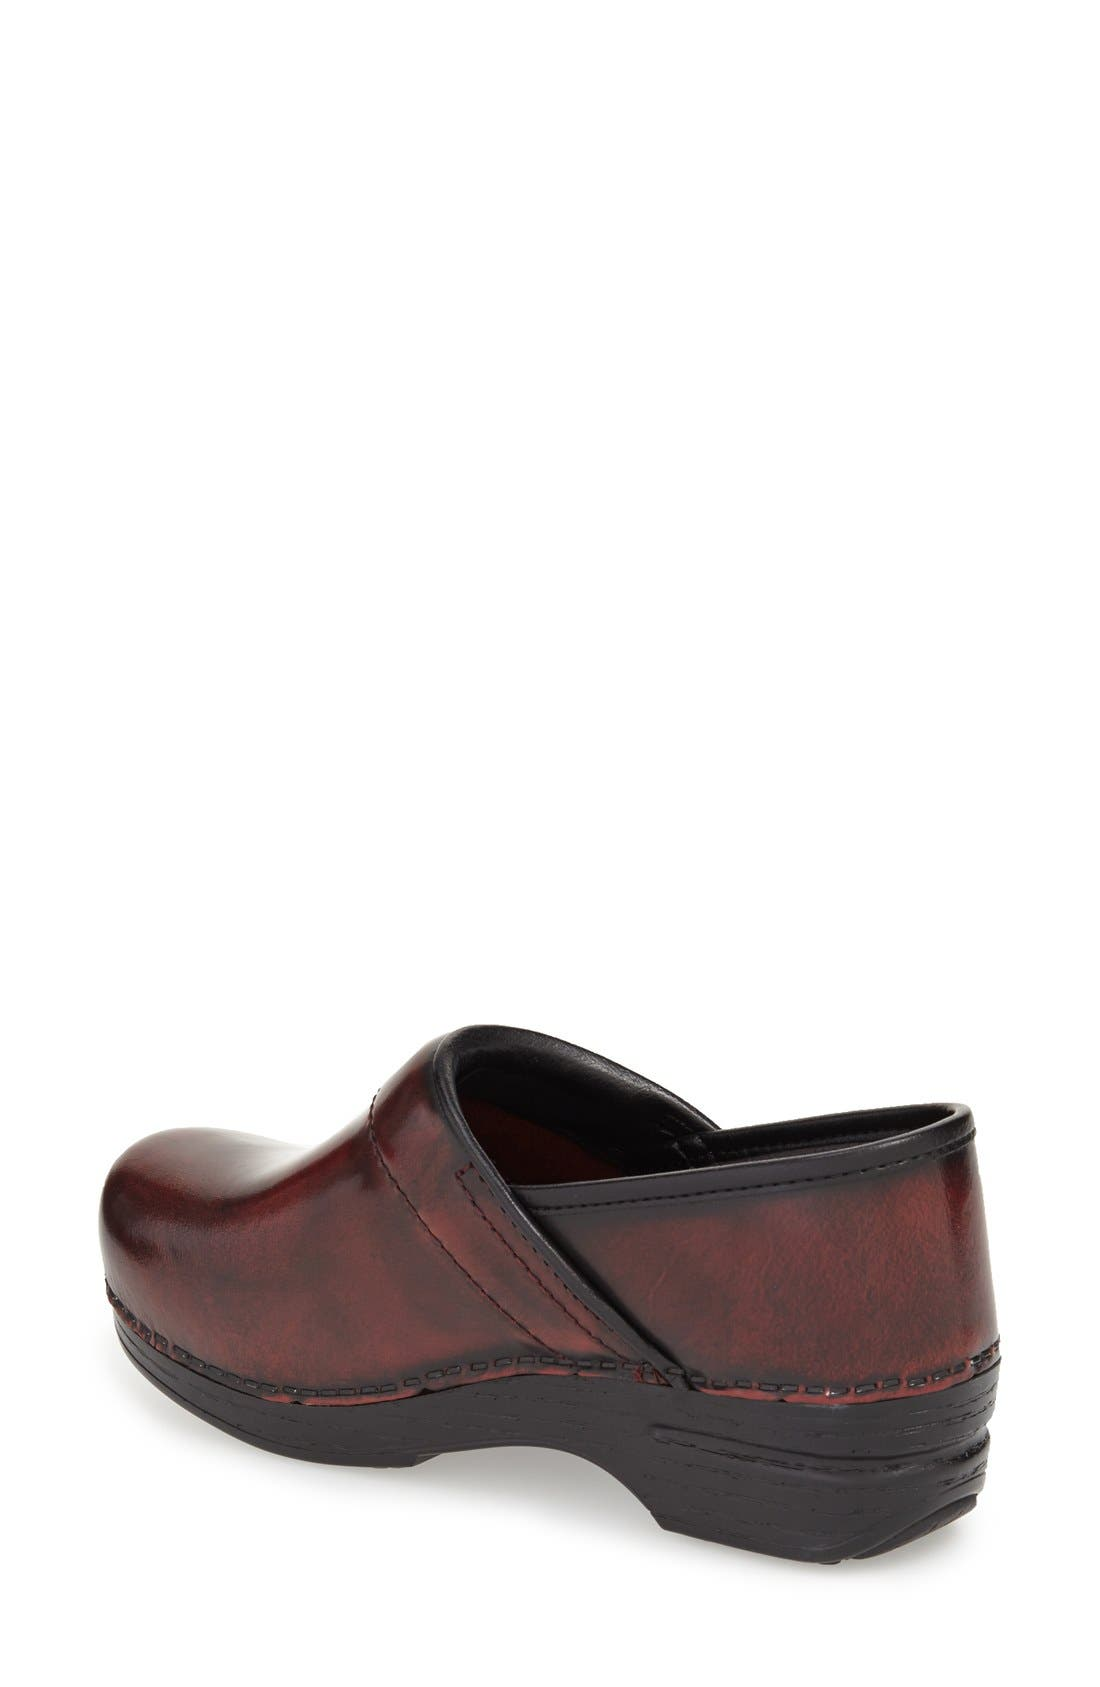 'Pro XP' Patent Leather Clog,                             Alternate thumbnail 2, color,                             Burgundy Cabrio Patent Leather